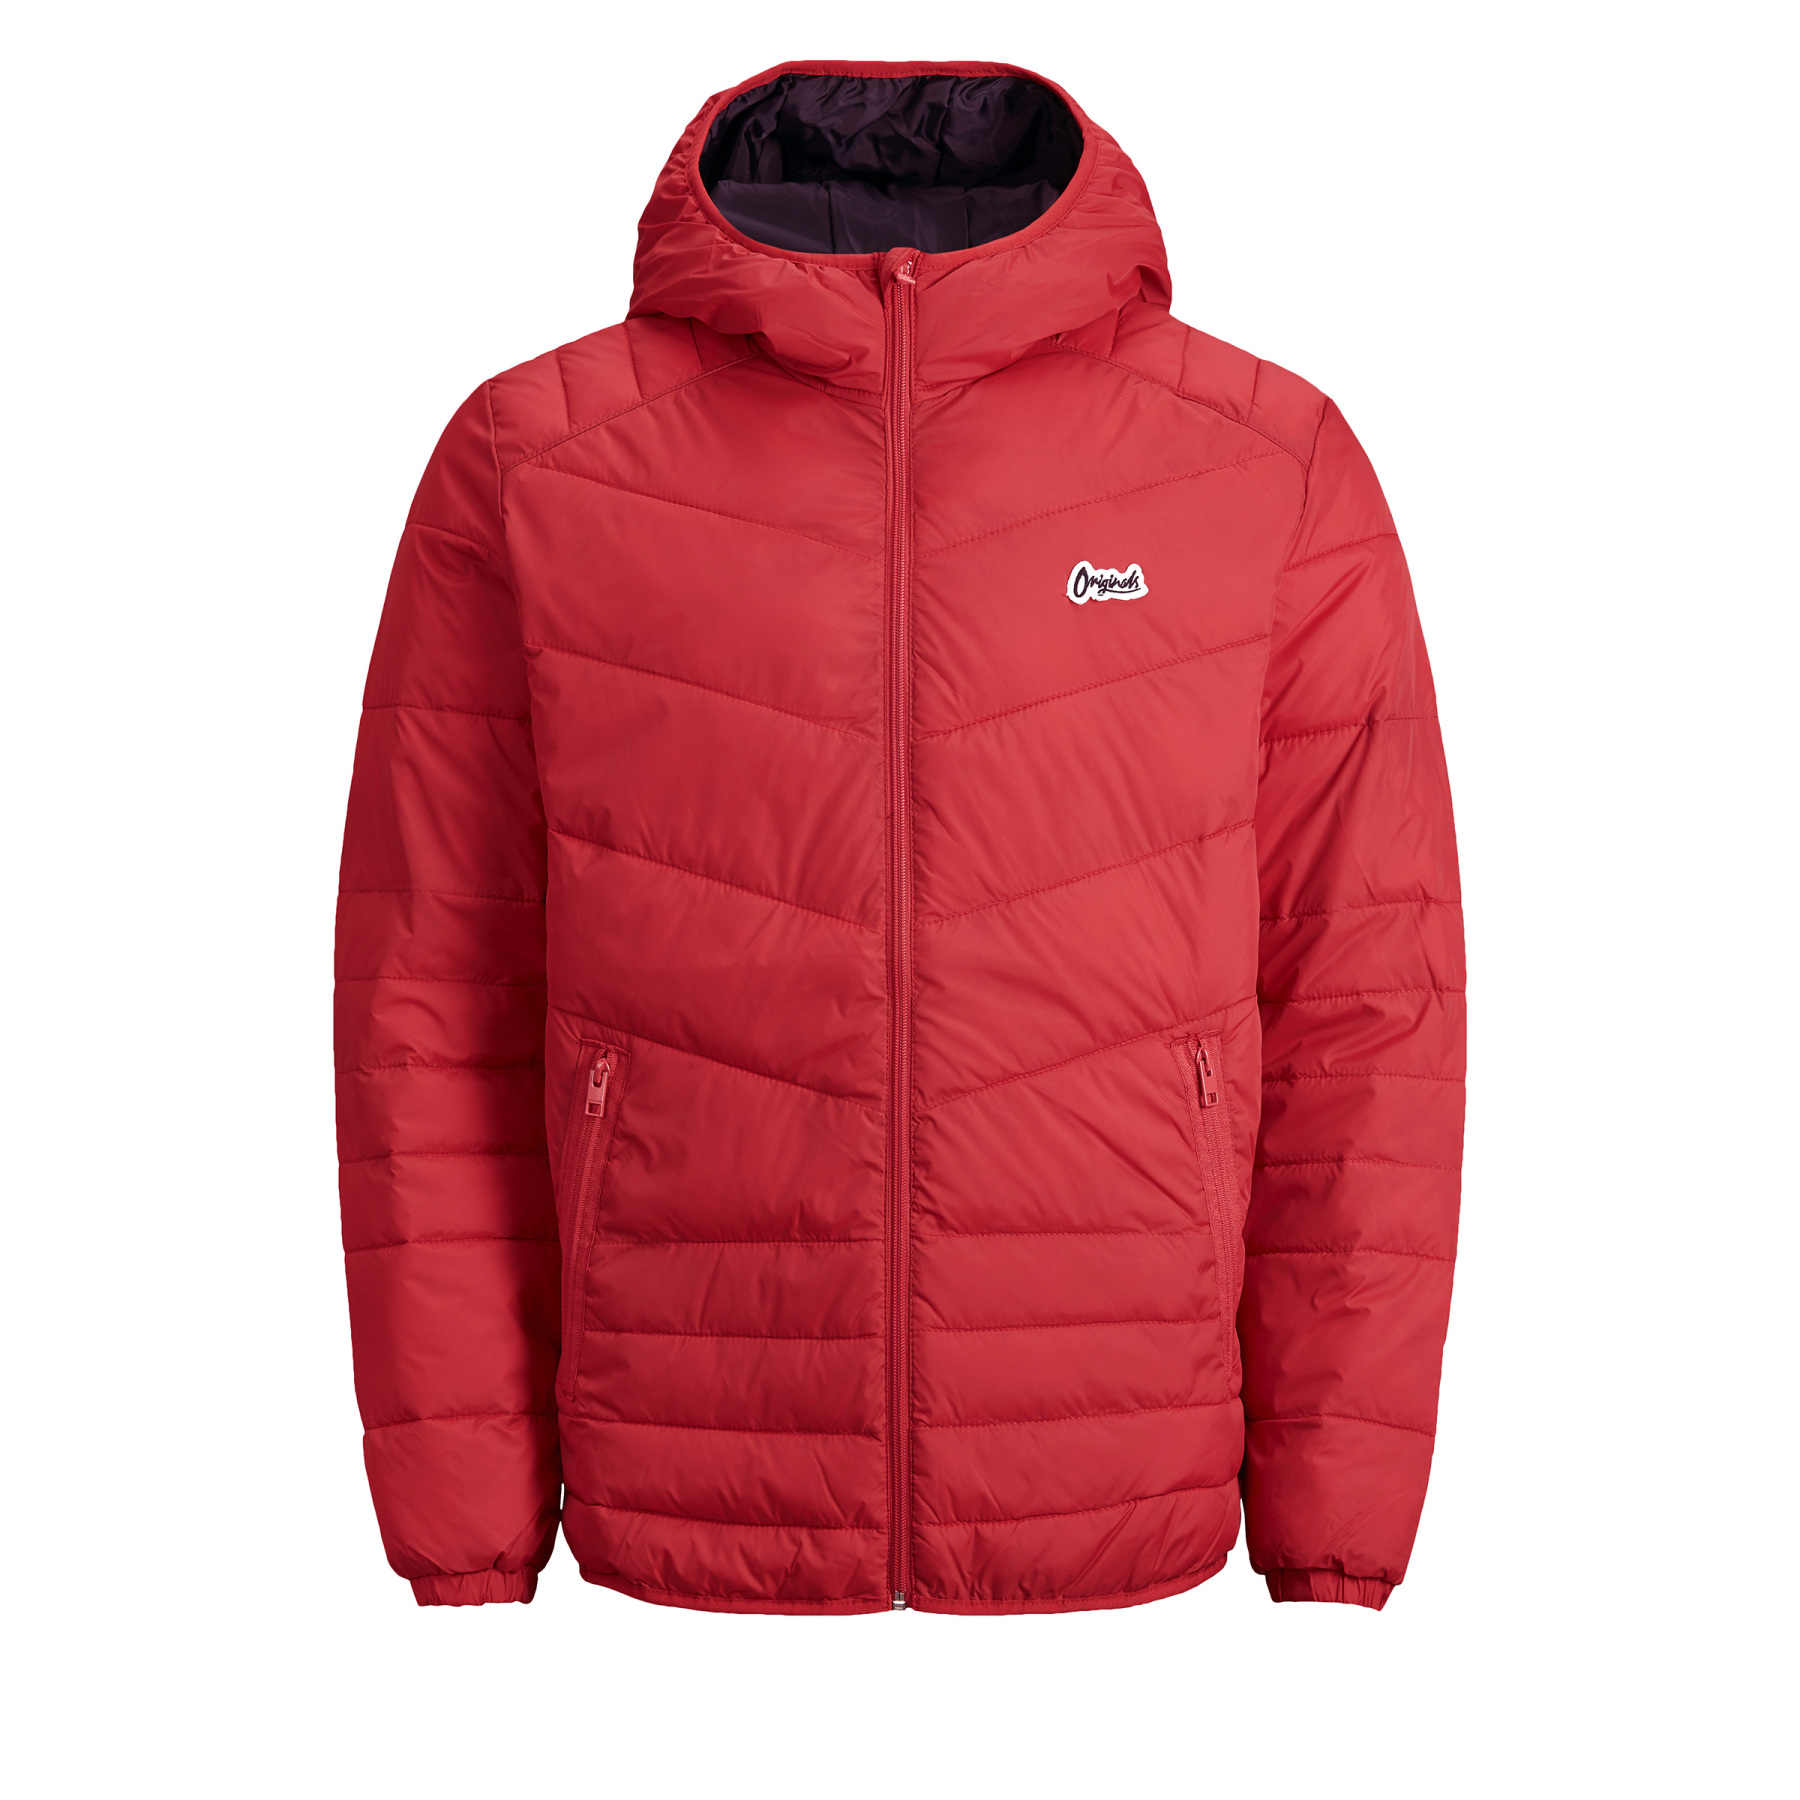 Jack and Jones Men/'s Jacket Bend Light Weight Water Repellent Puffer Hooded Zip